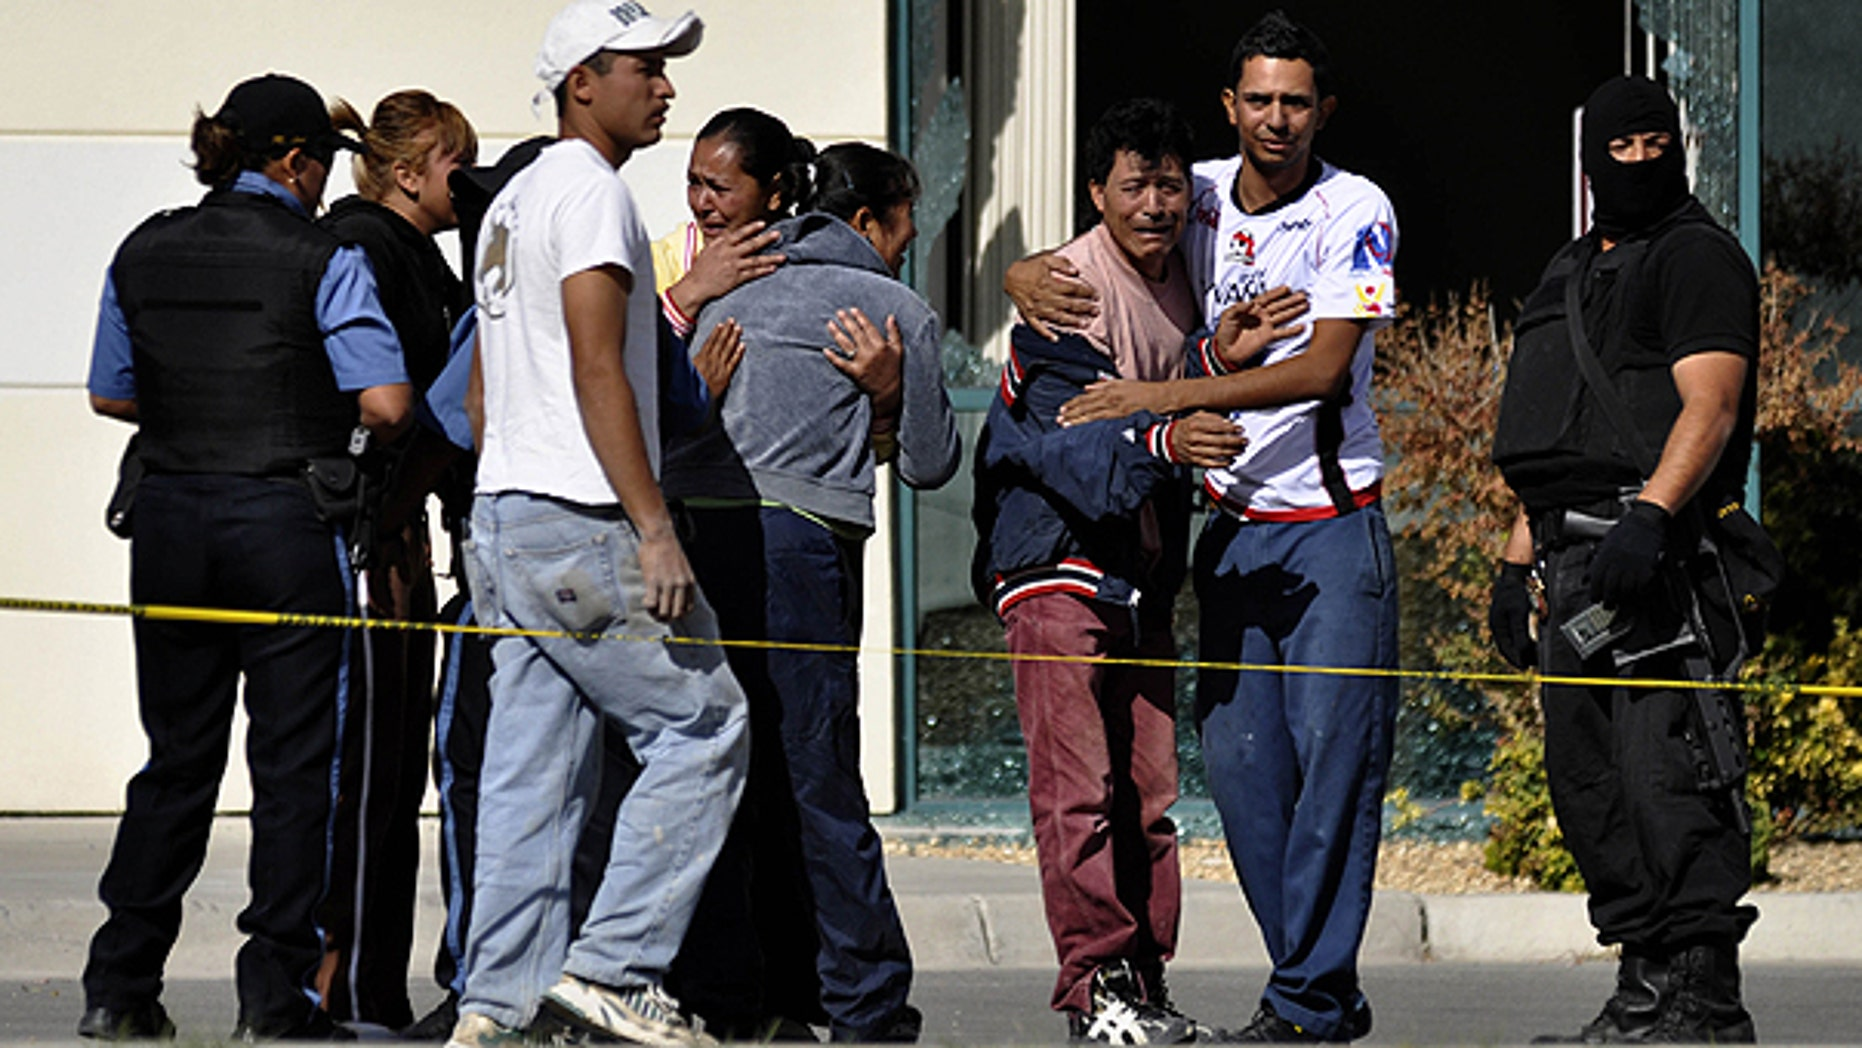 Nov. 7: Relatives of fallen police officers react as they arrive to the scene after gunmen attacked a municipal police car in the northern border city of Ciudad Juarez, Mexico.